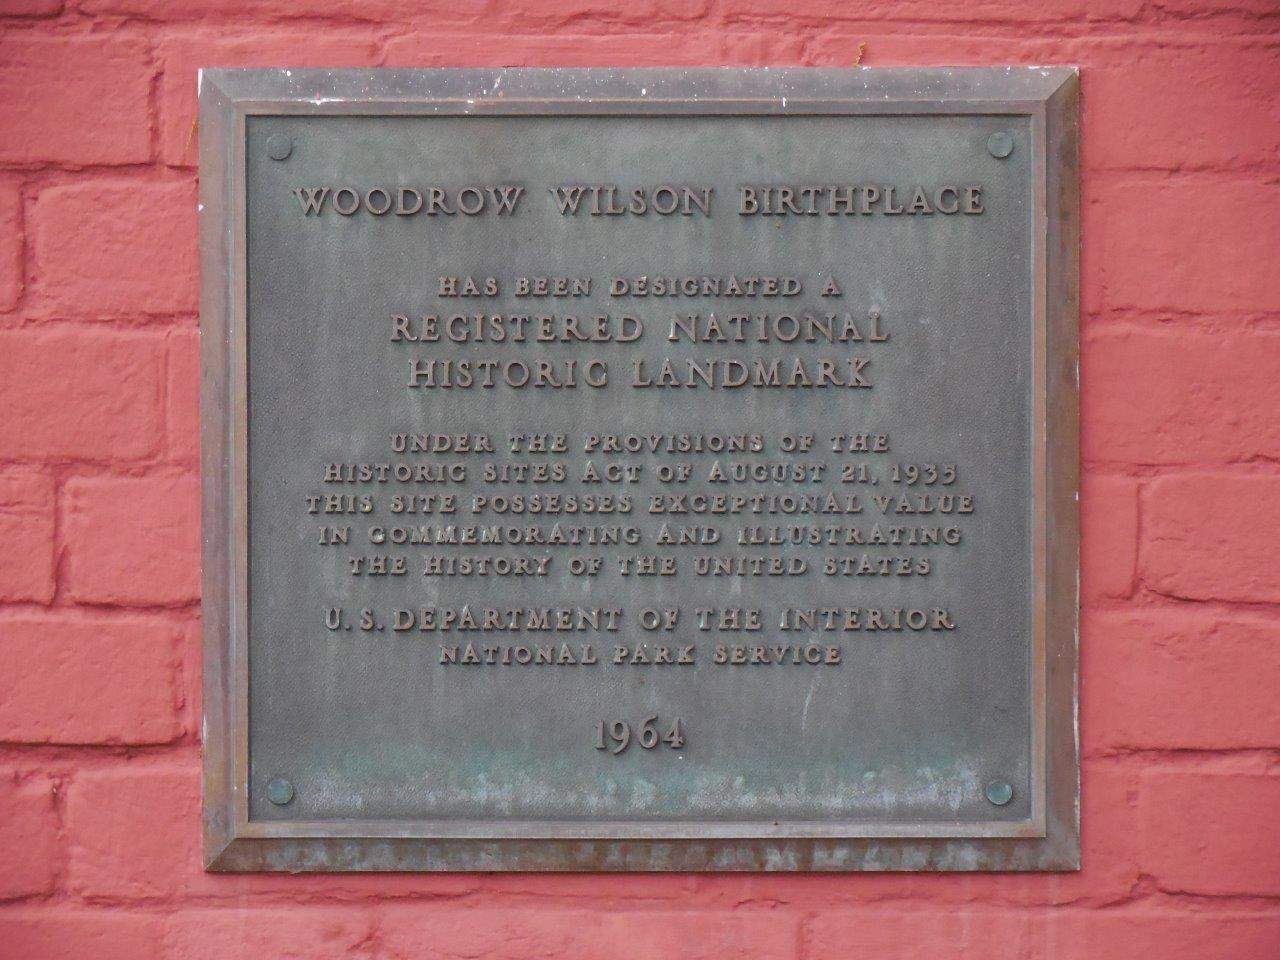 Woodrow Wilson birthplace historical marker